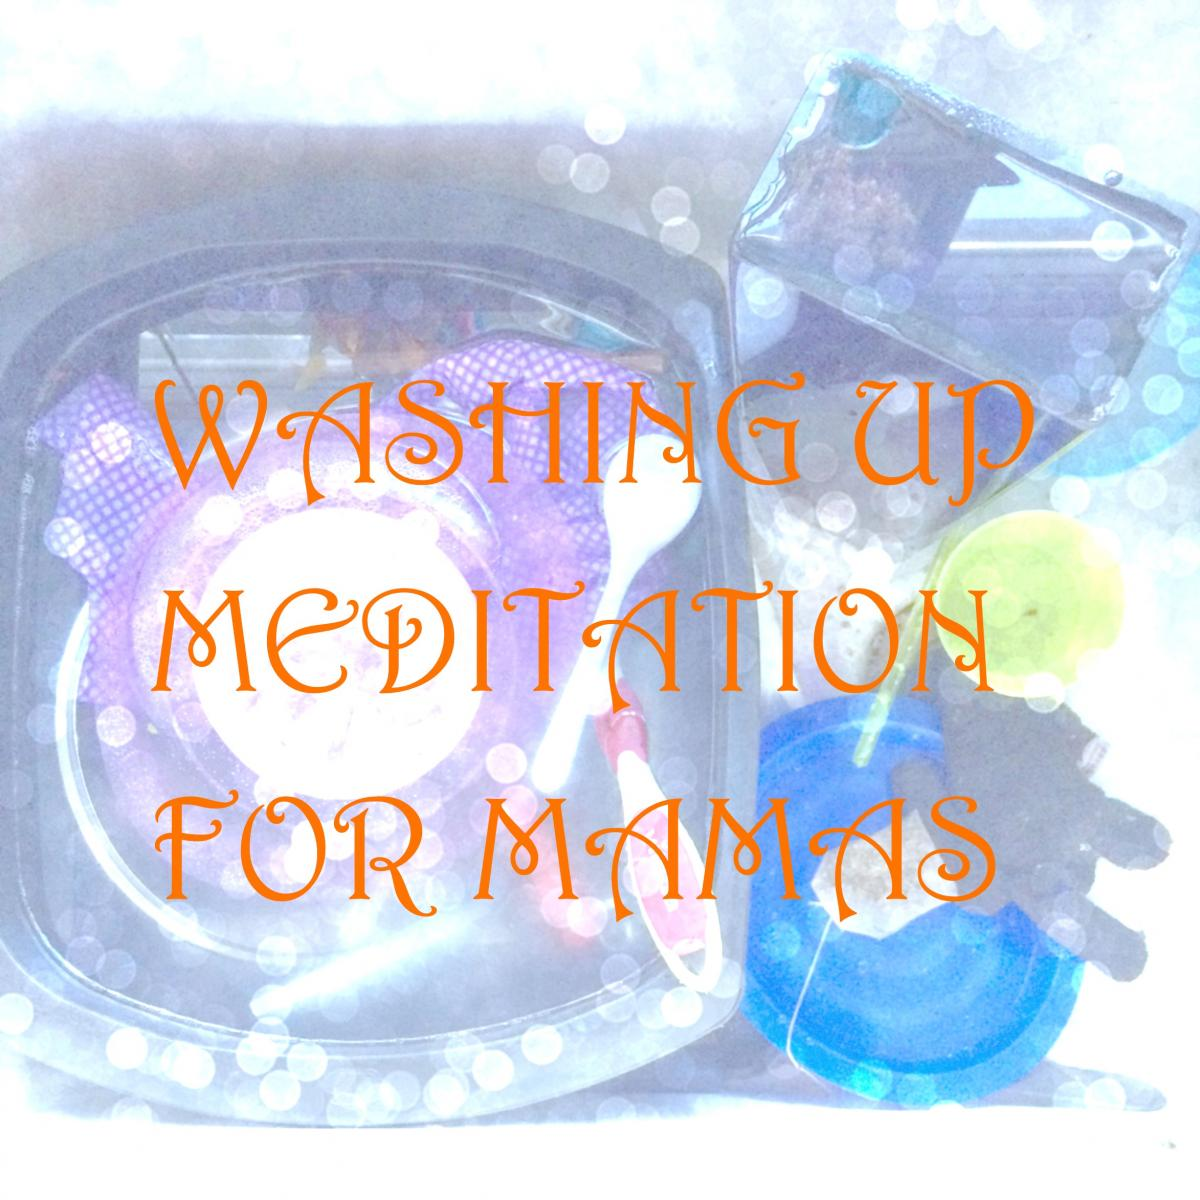 A meditation for washing up